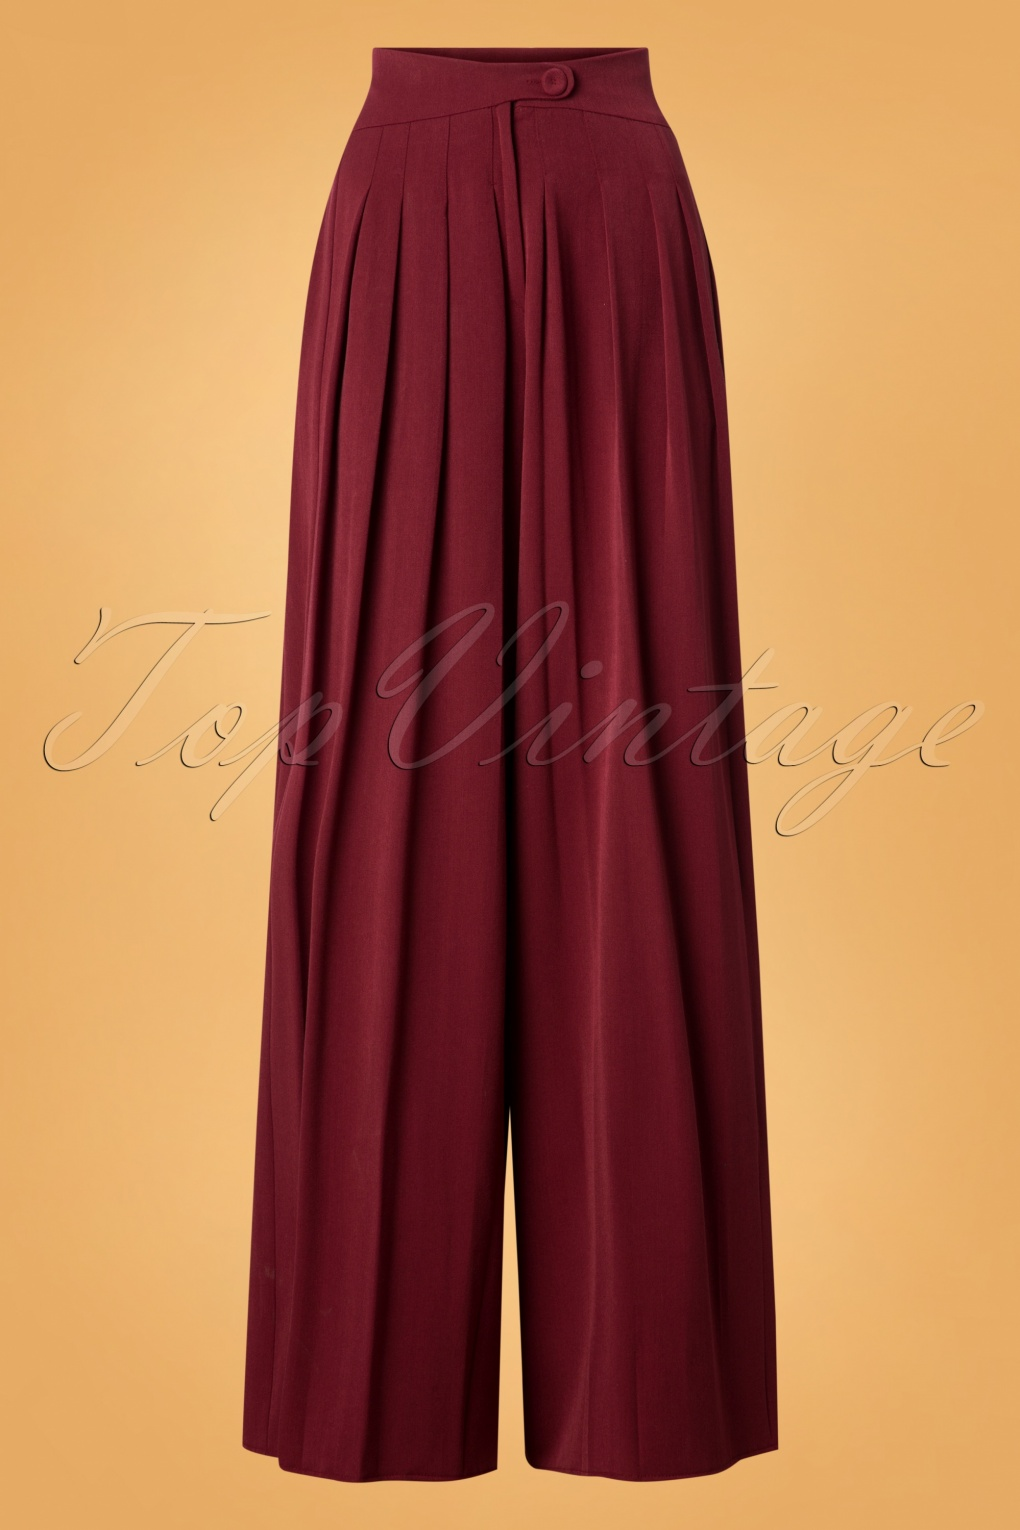 1940s Swing Pants & Sailor Trousers- Wide Leg, High Waist 40s Anouk Wide Leg Trousers in Wine £69.04 AT vintagedancer.com